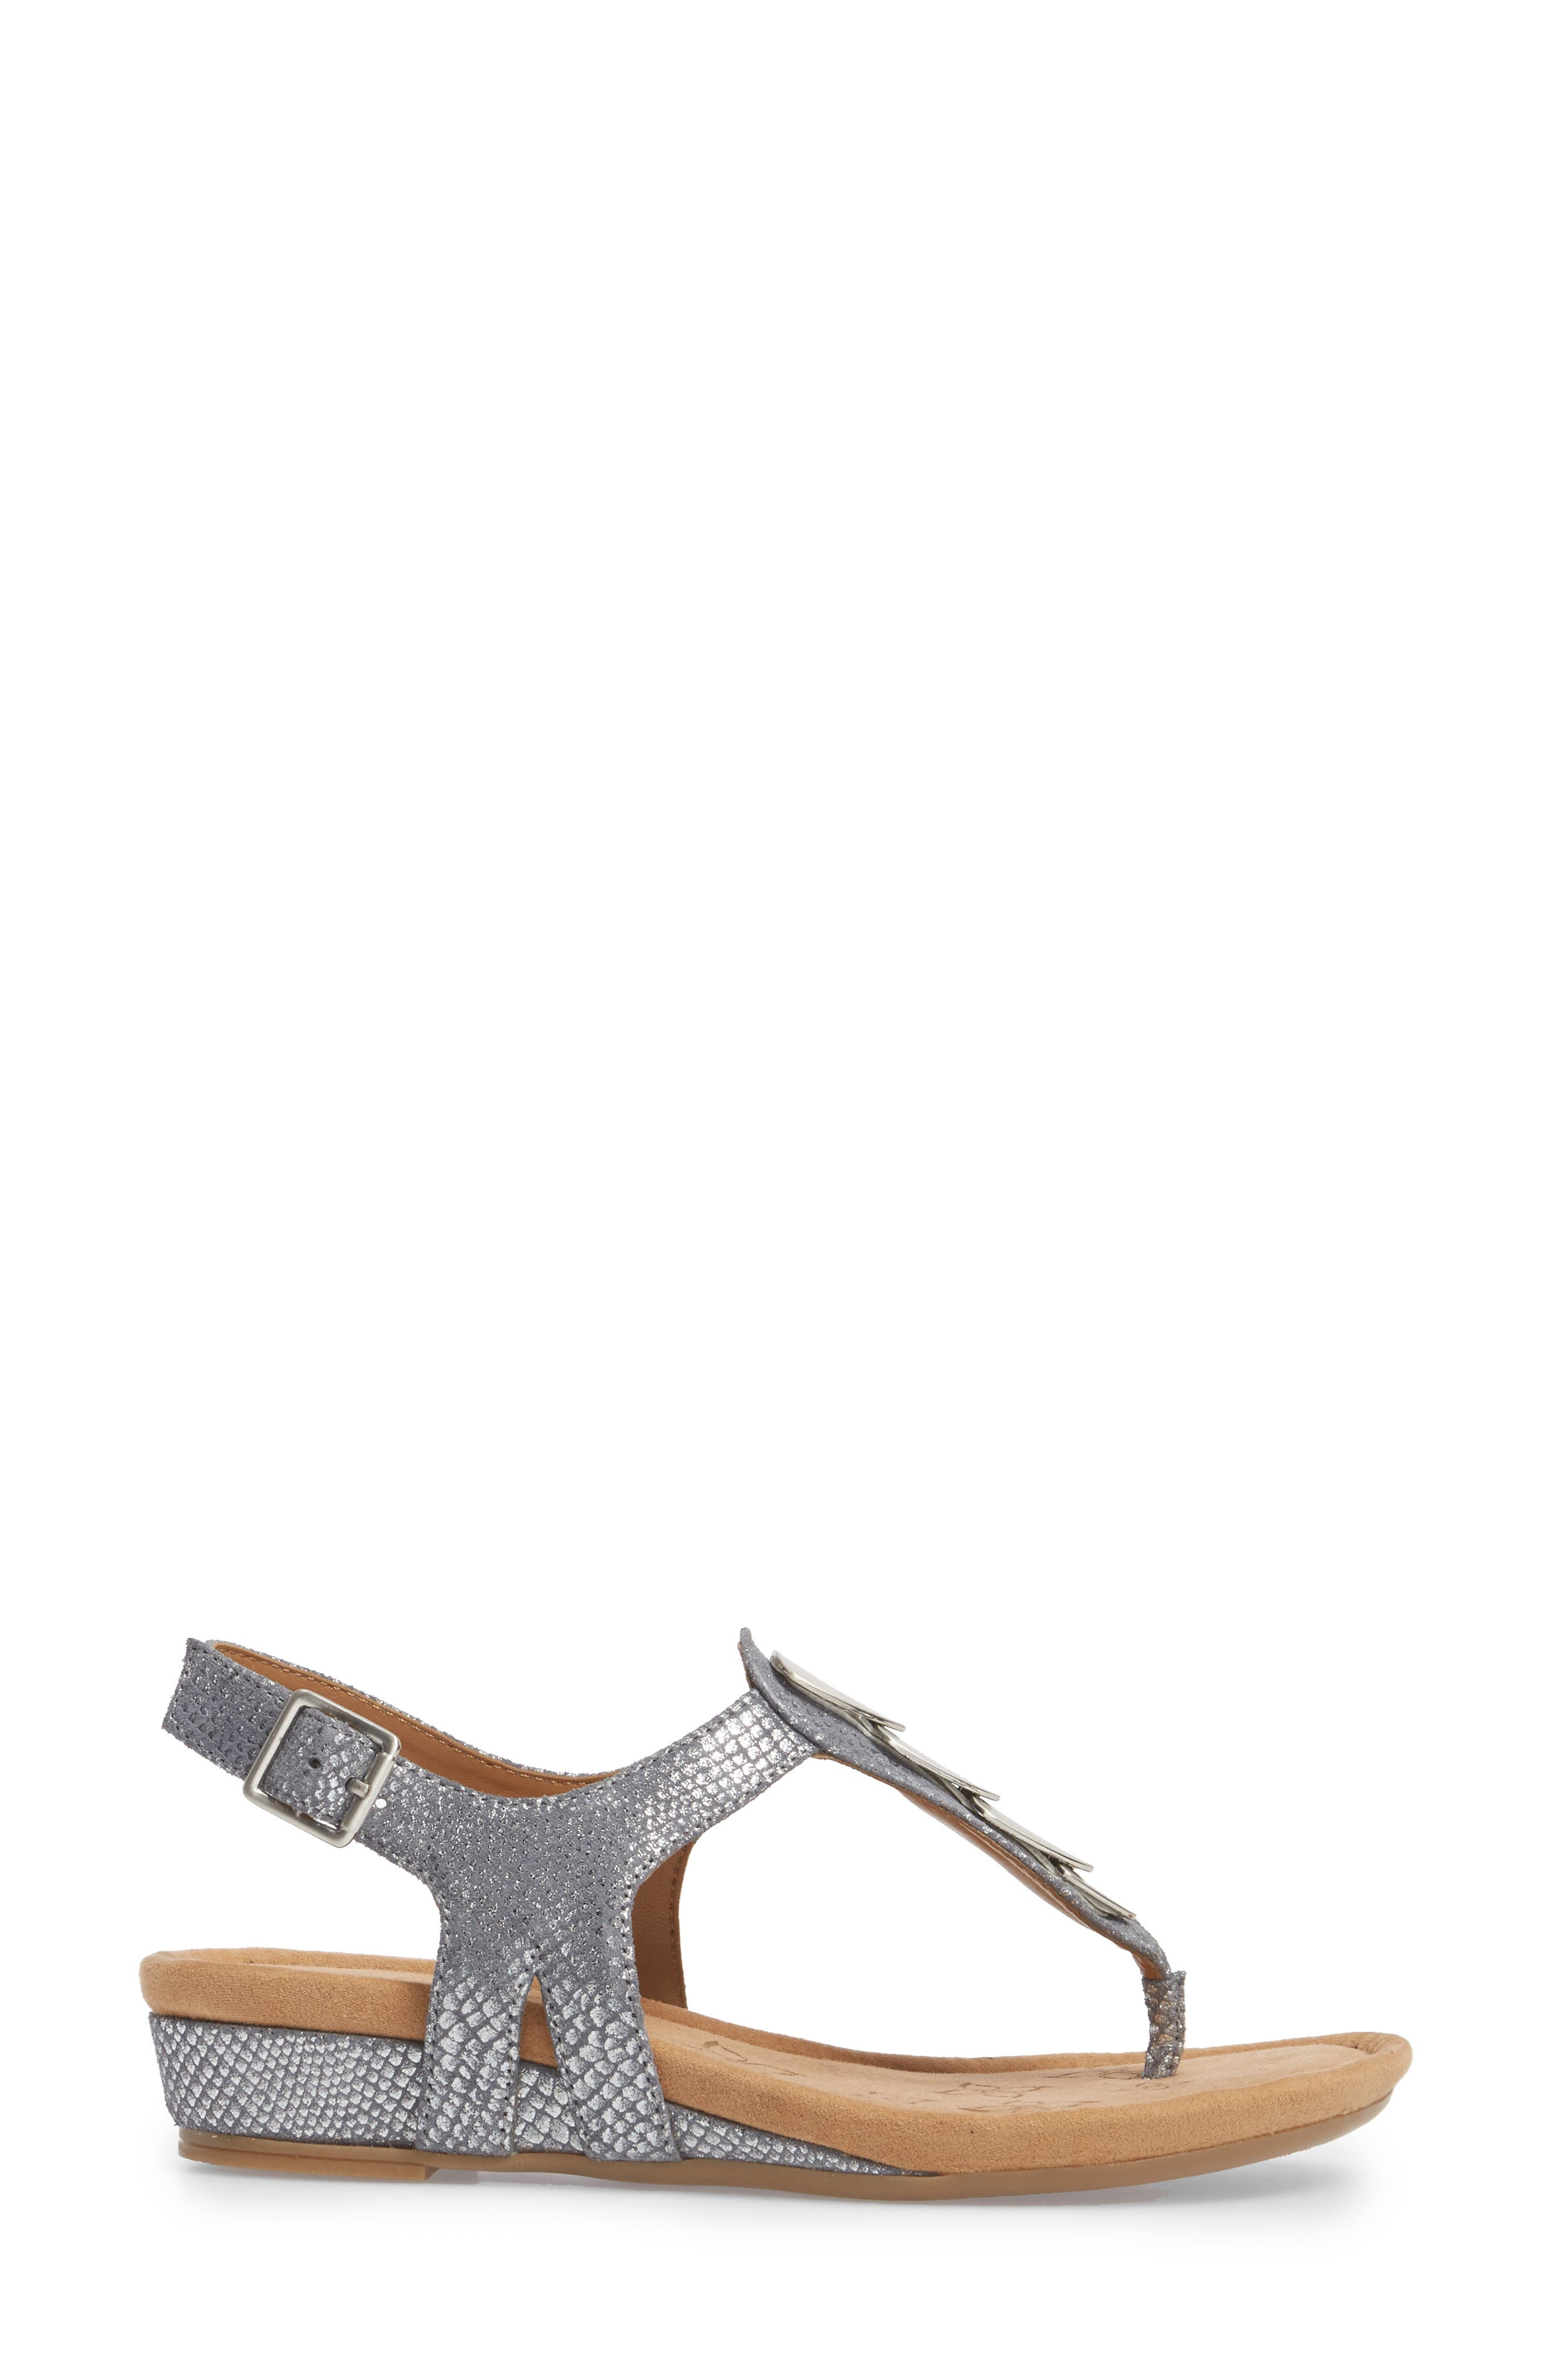 Summit Wedge Sandal,                             Alternate thumbnail 3, color,                             PEWTER SUEDE